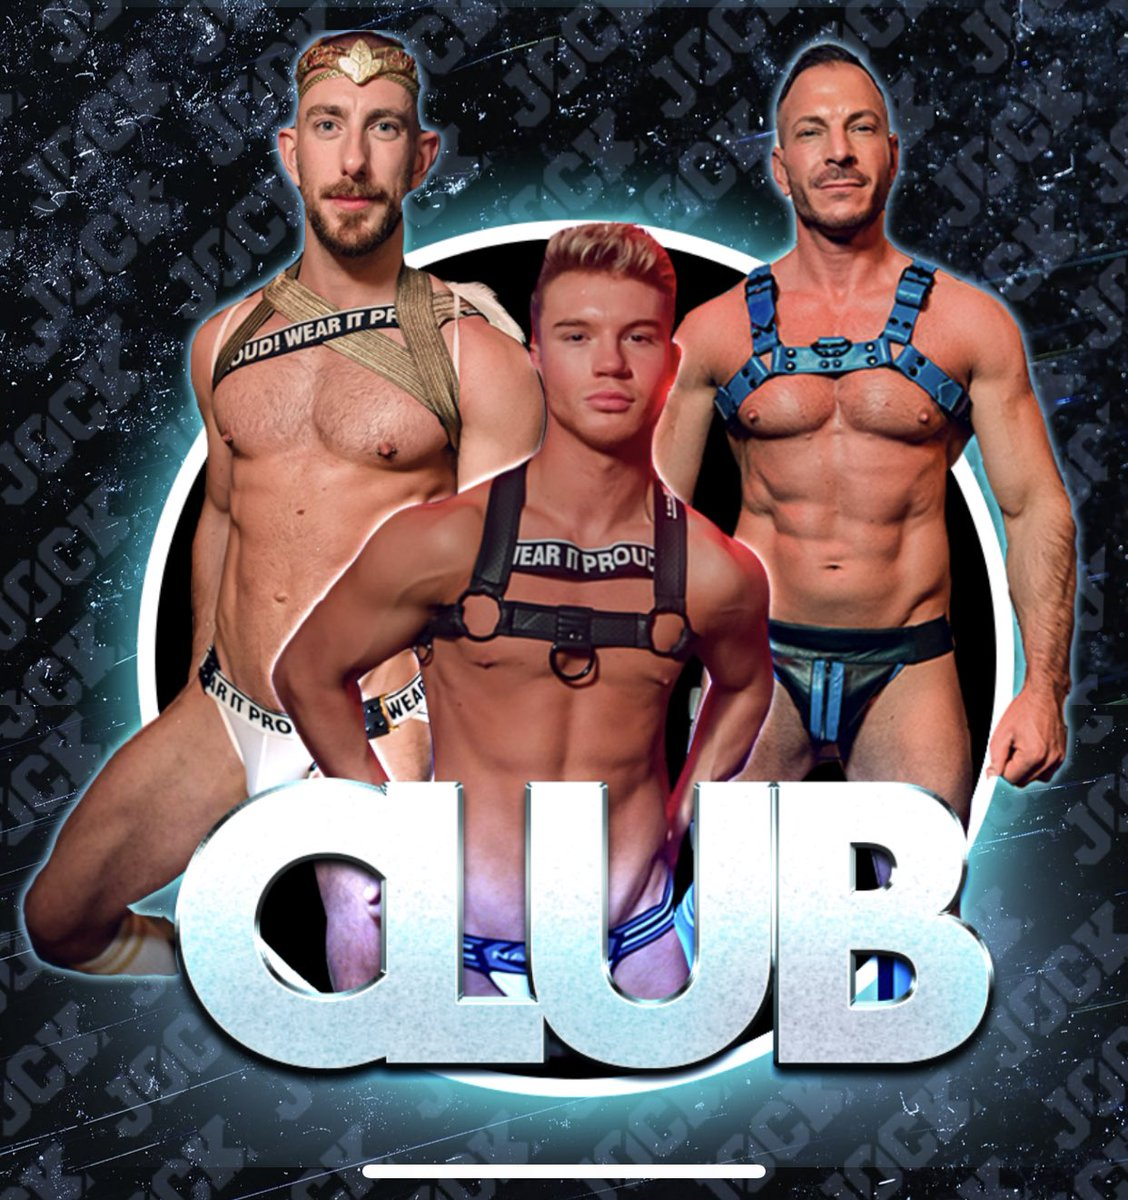 We can't wait to get back to the club!!! Manchster, Birmingham, London and more coming to you as soon as they let us!! jockparty.club for all updates